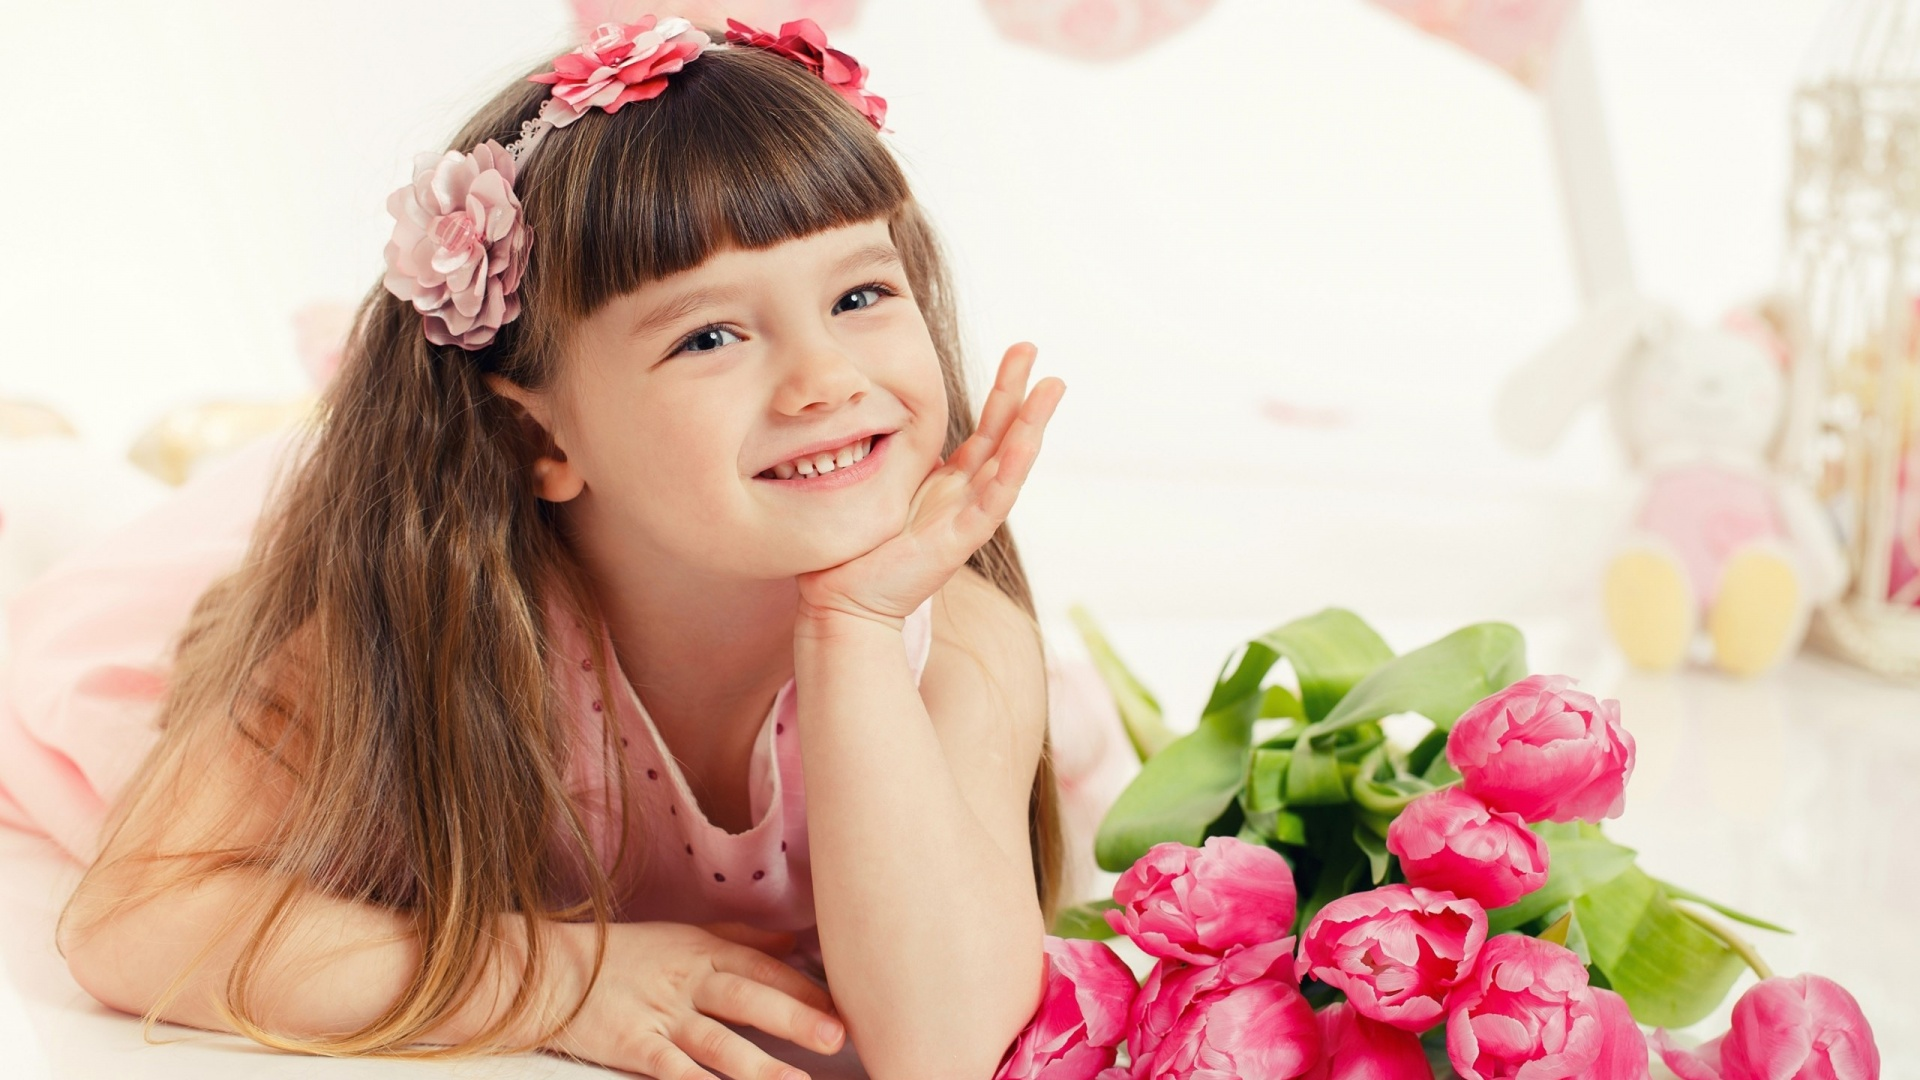 Beautiful Little Girl With Flowers And Toys Wallpapers 1920x1080